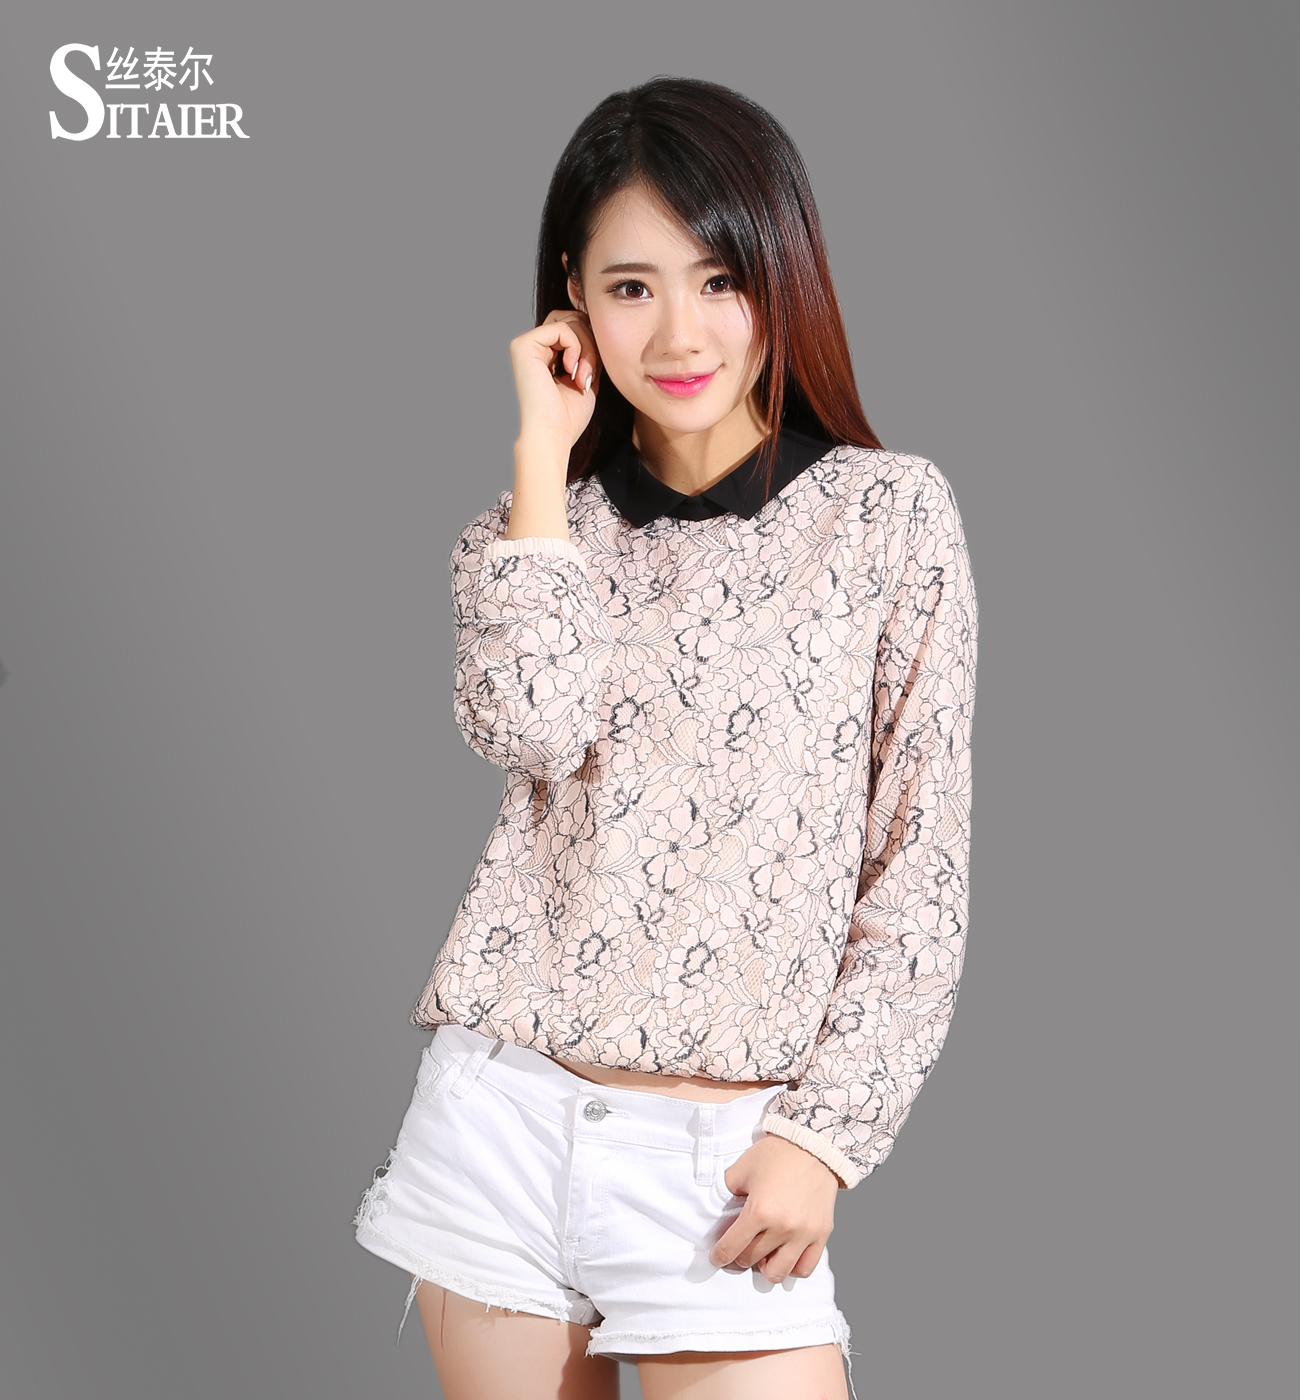 New design lady blouse top manufactured in China